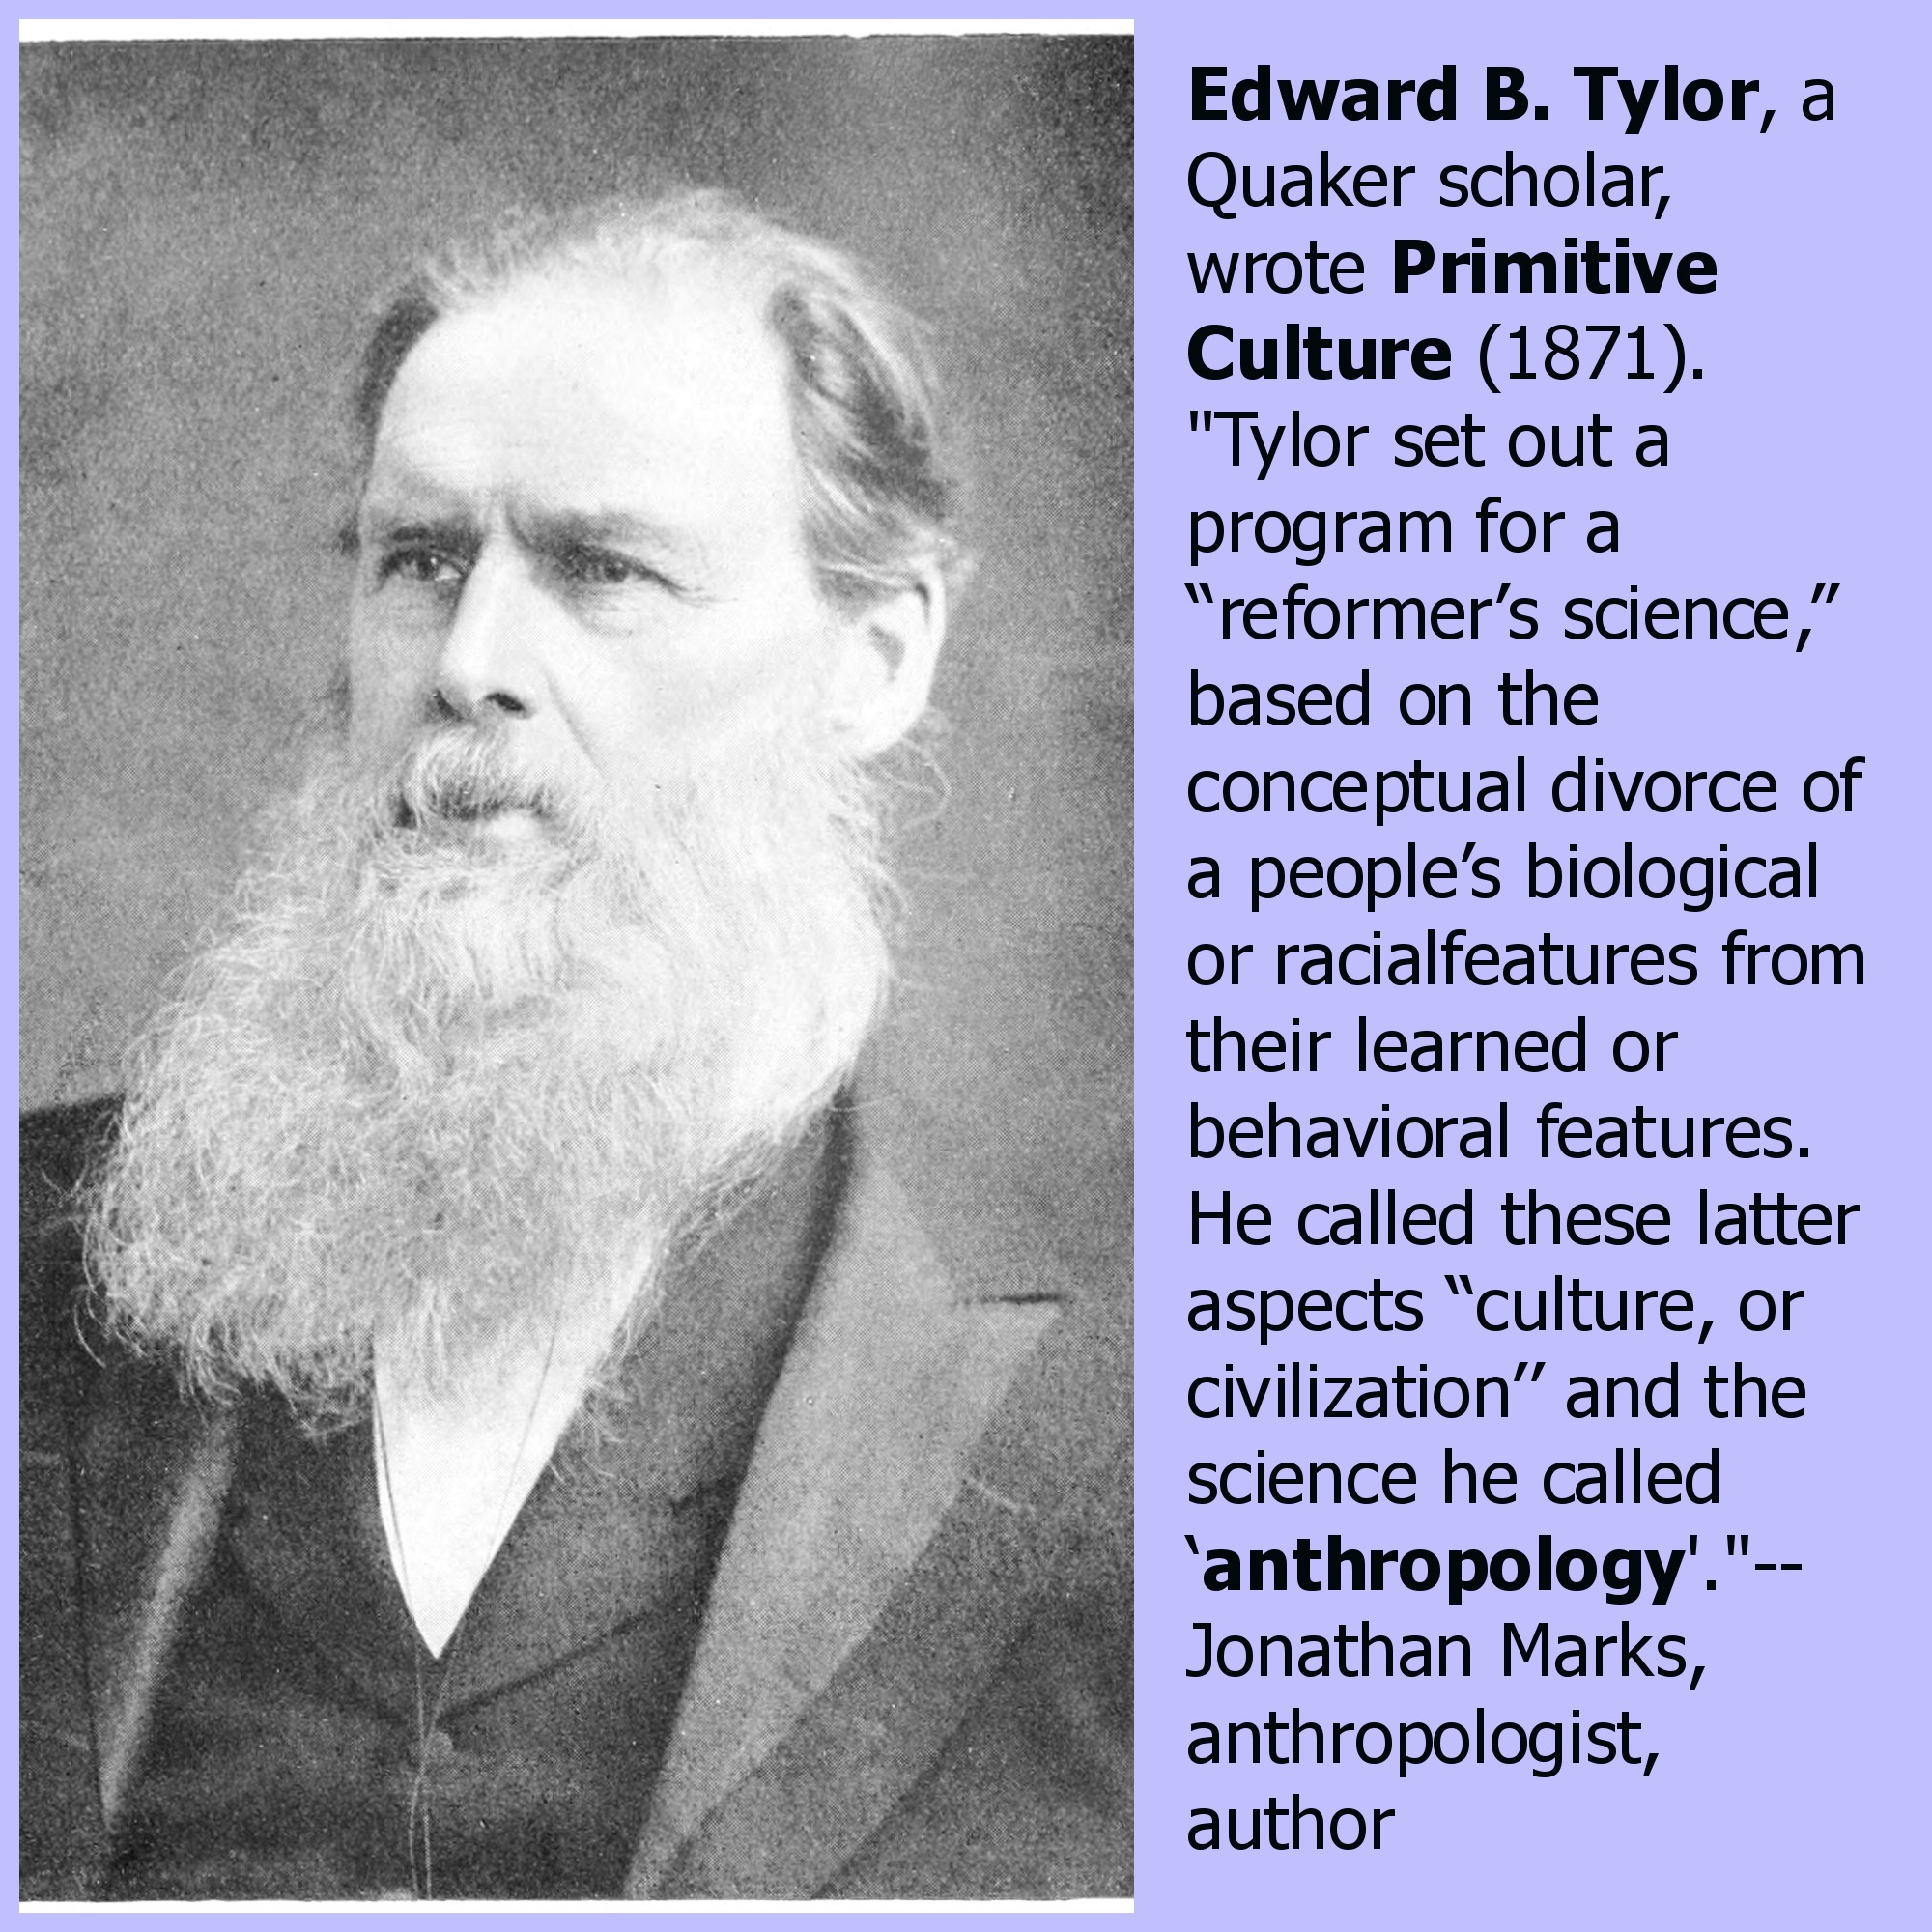 Edward B. Tylor